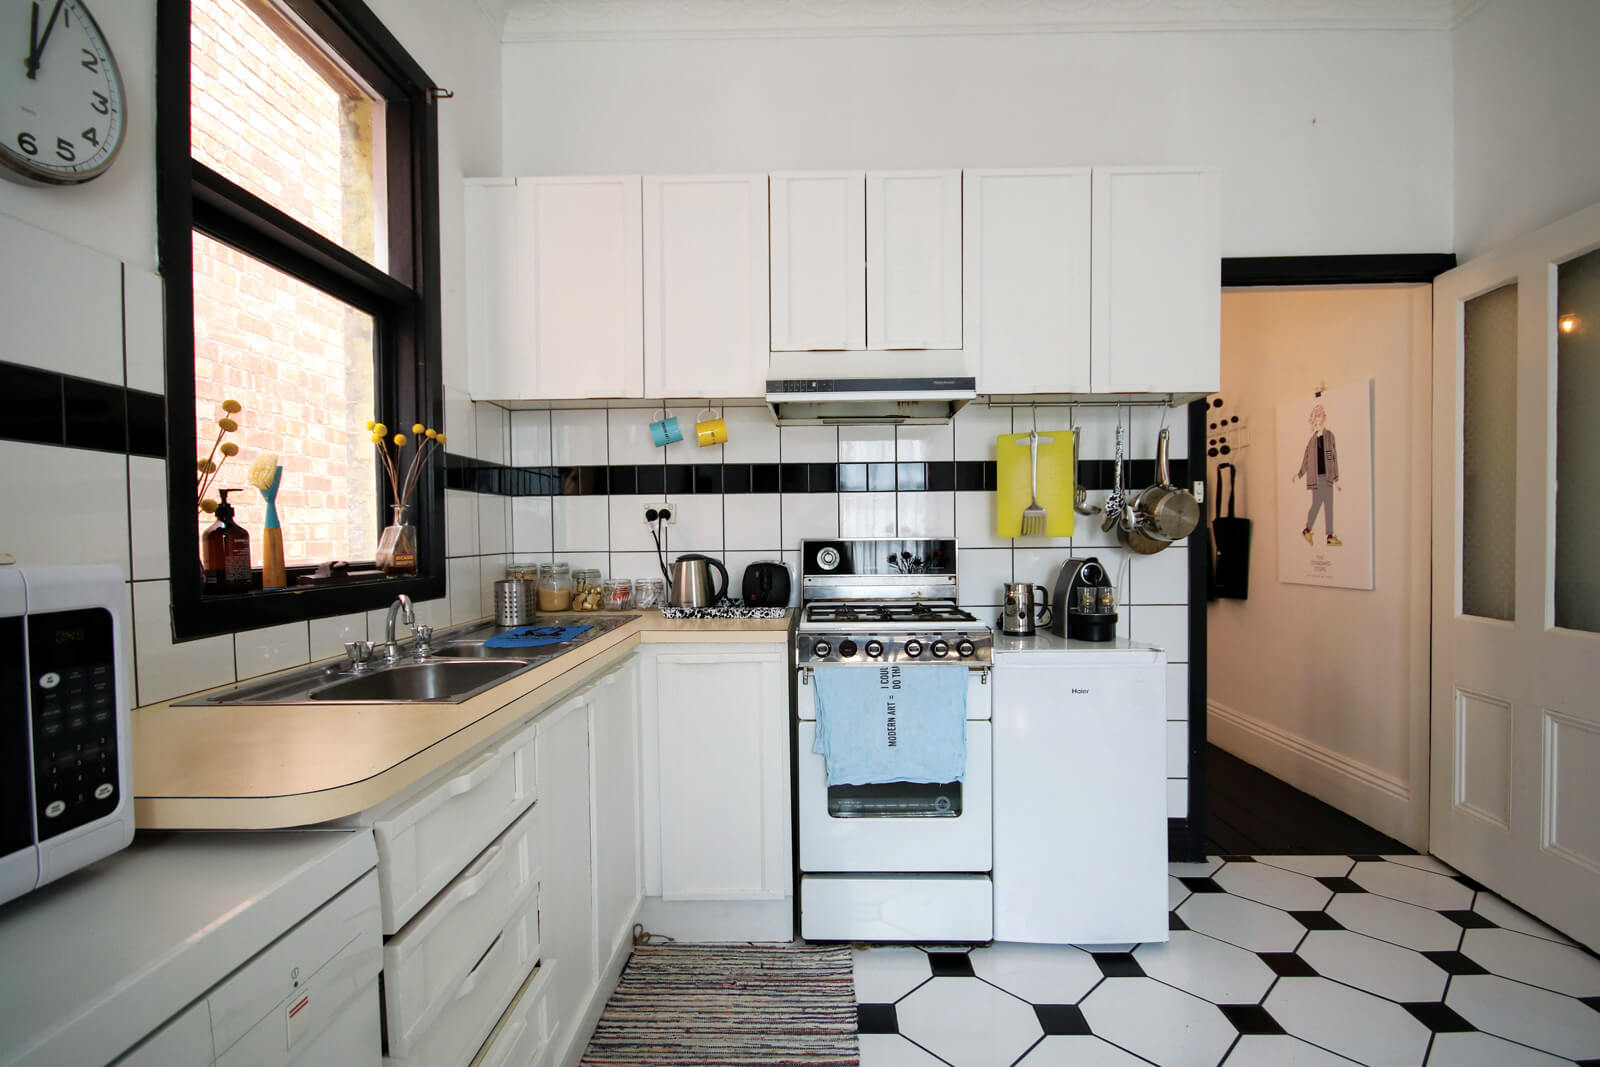 Fitzroy Apartment, Melbourne, Australia | vacation homes for rent